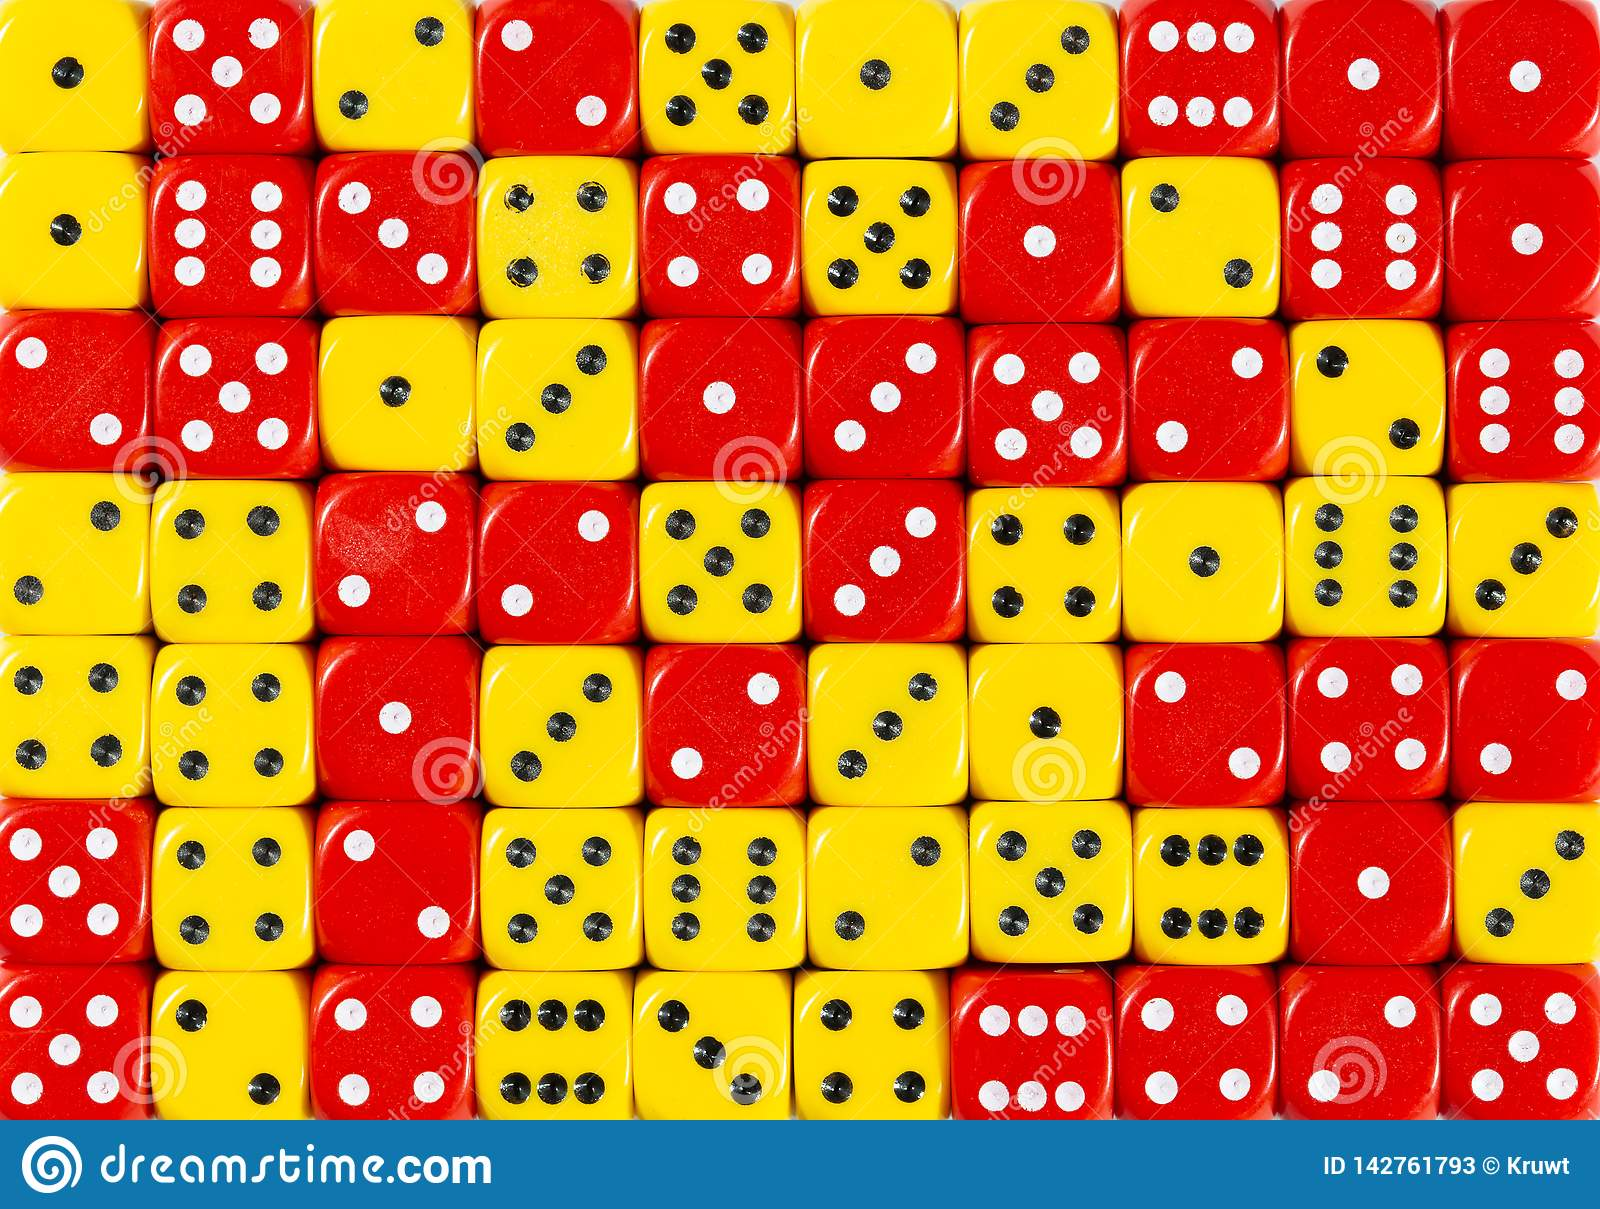 Background of 70 random ordered red and yellow dices